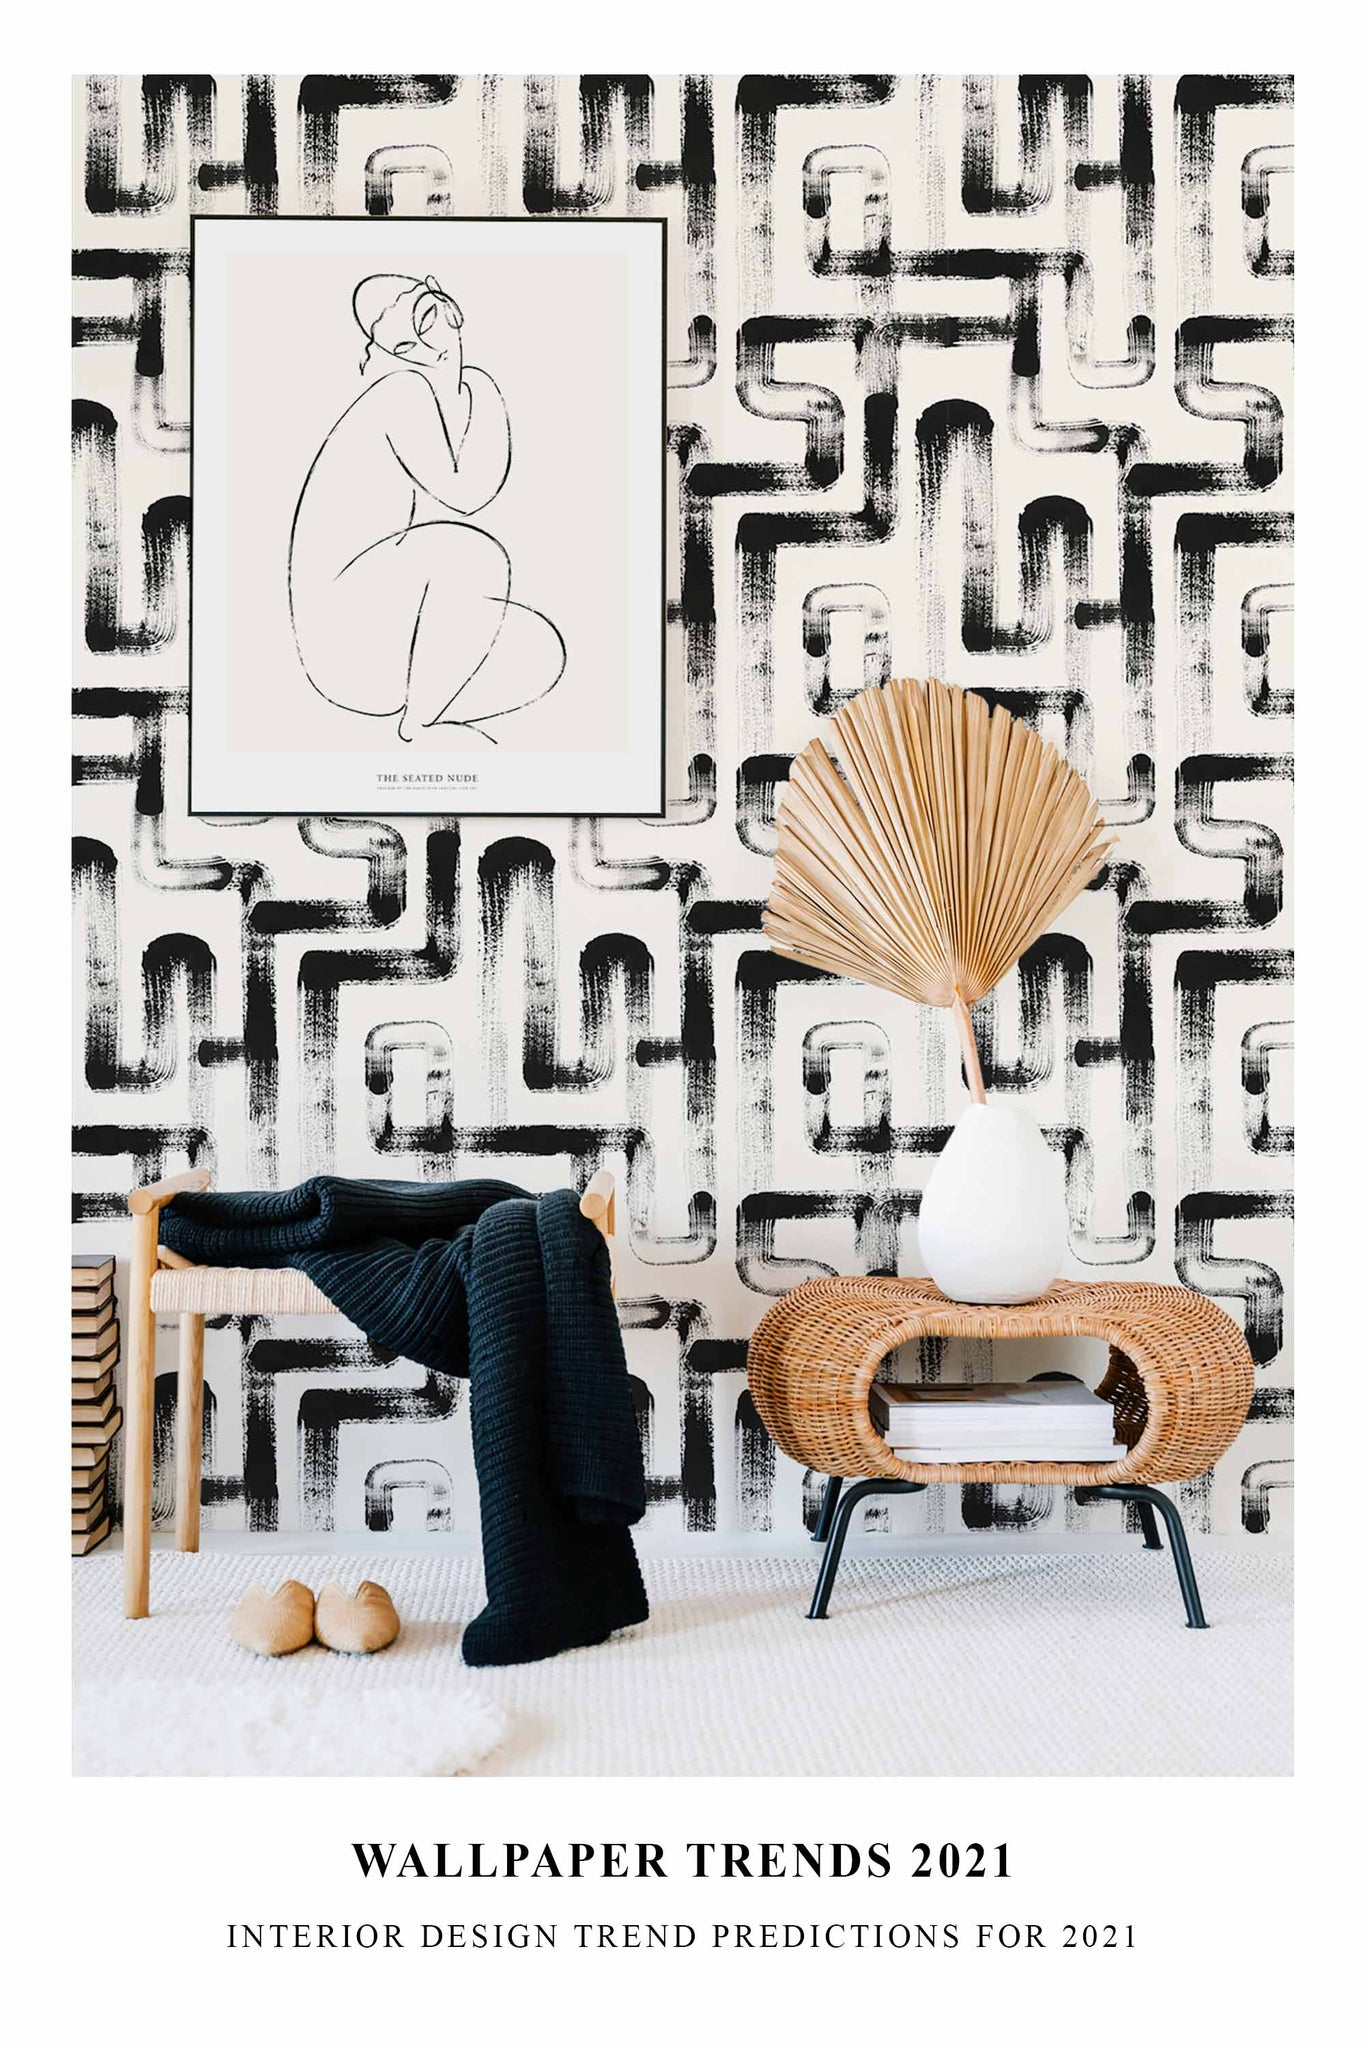 Modern removable wallpaper trends in 2021